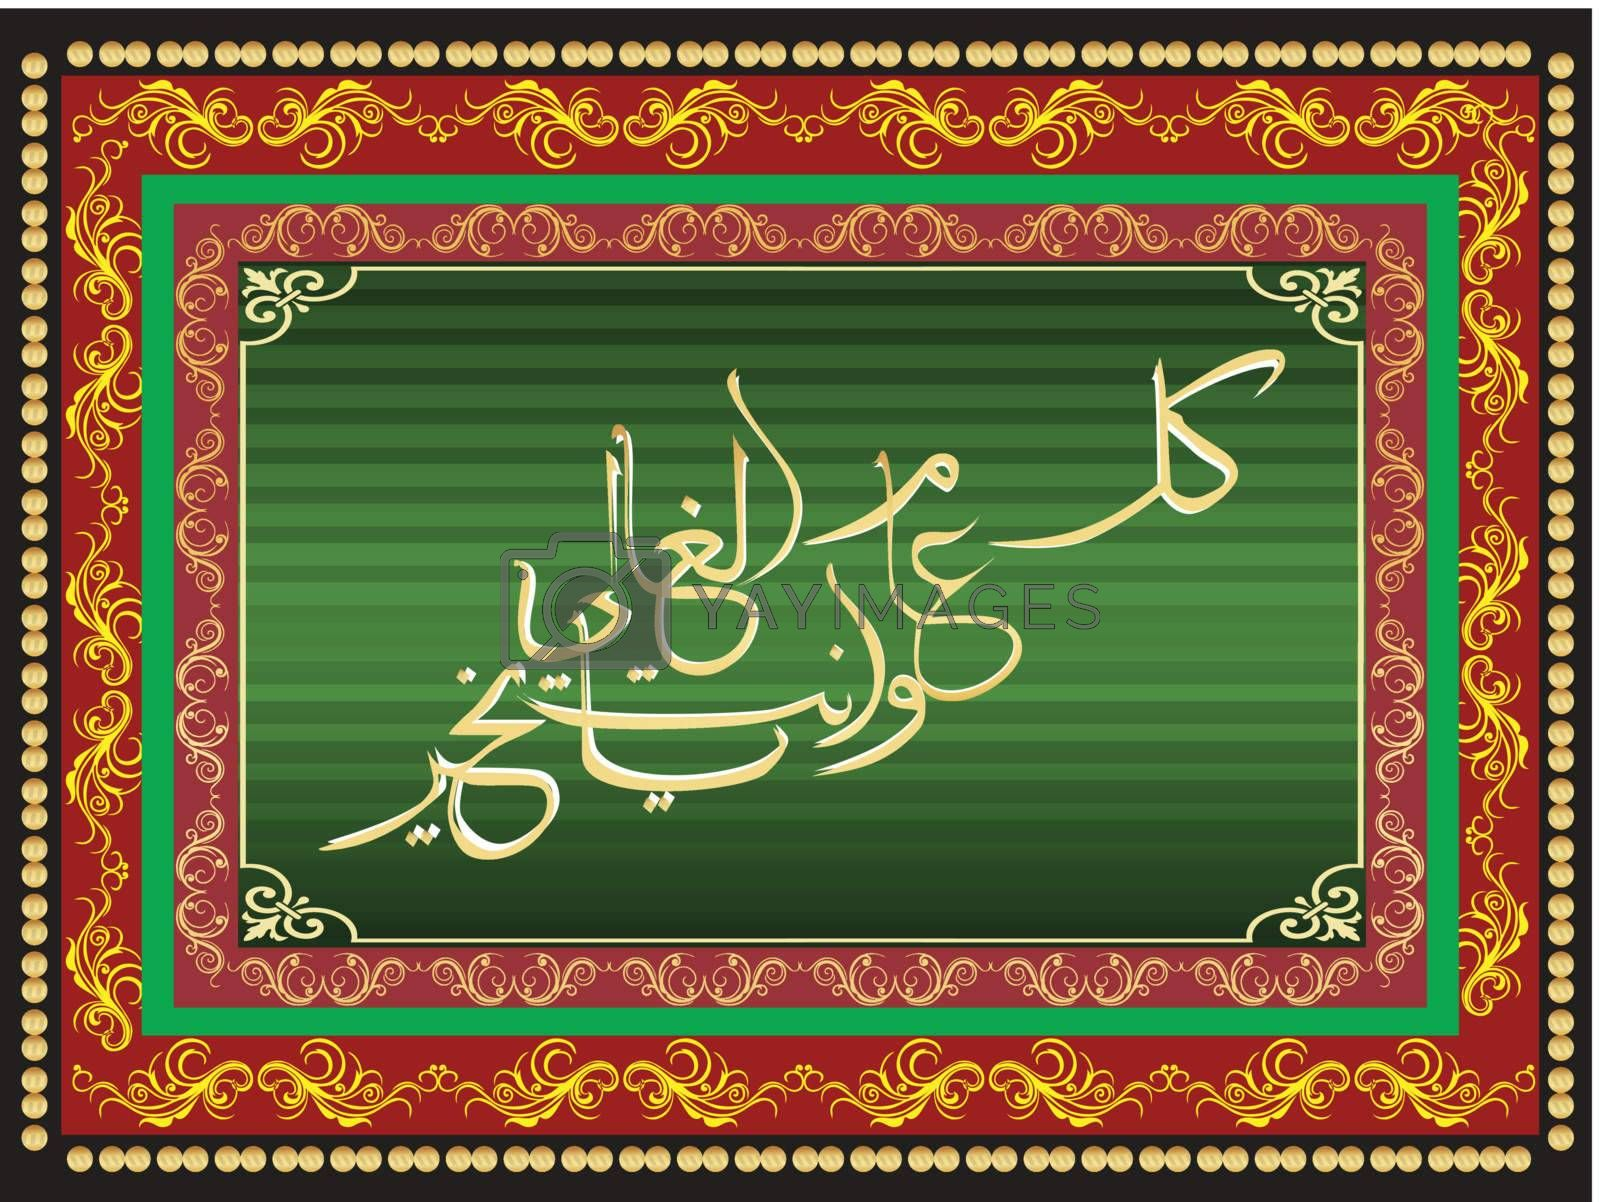 abstract frame with creative islamic background, design51 by aispl